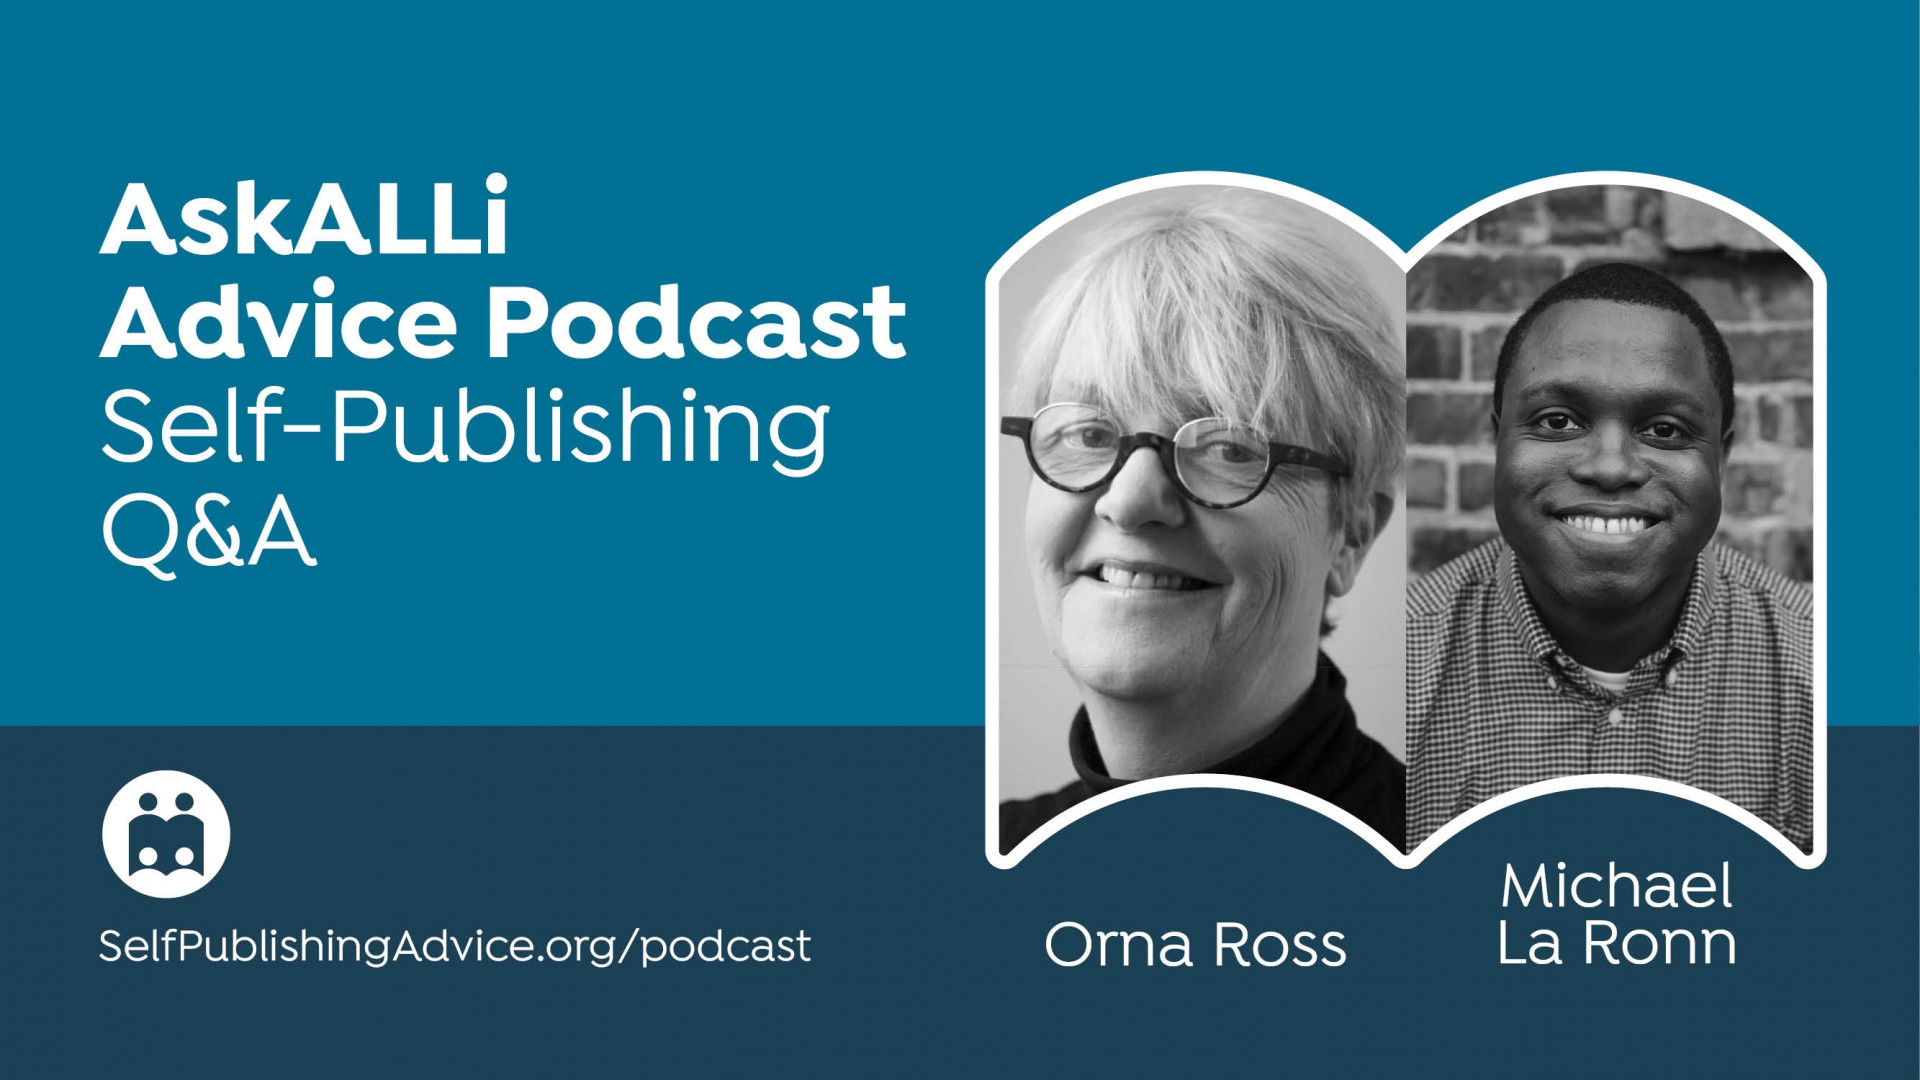 PODCAST: Do I Need Sample Edits For My Book?